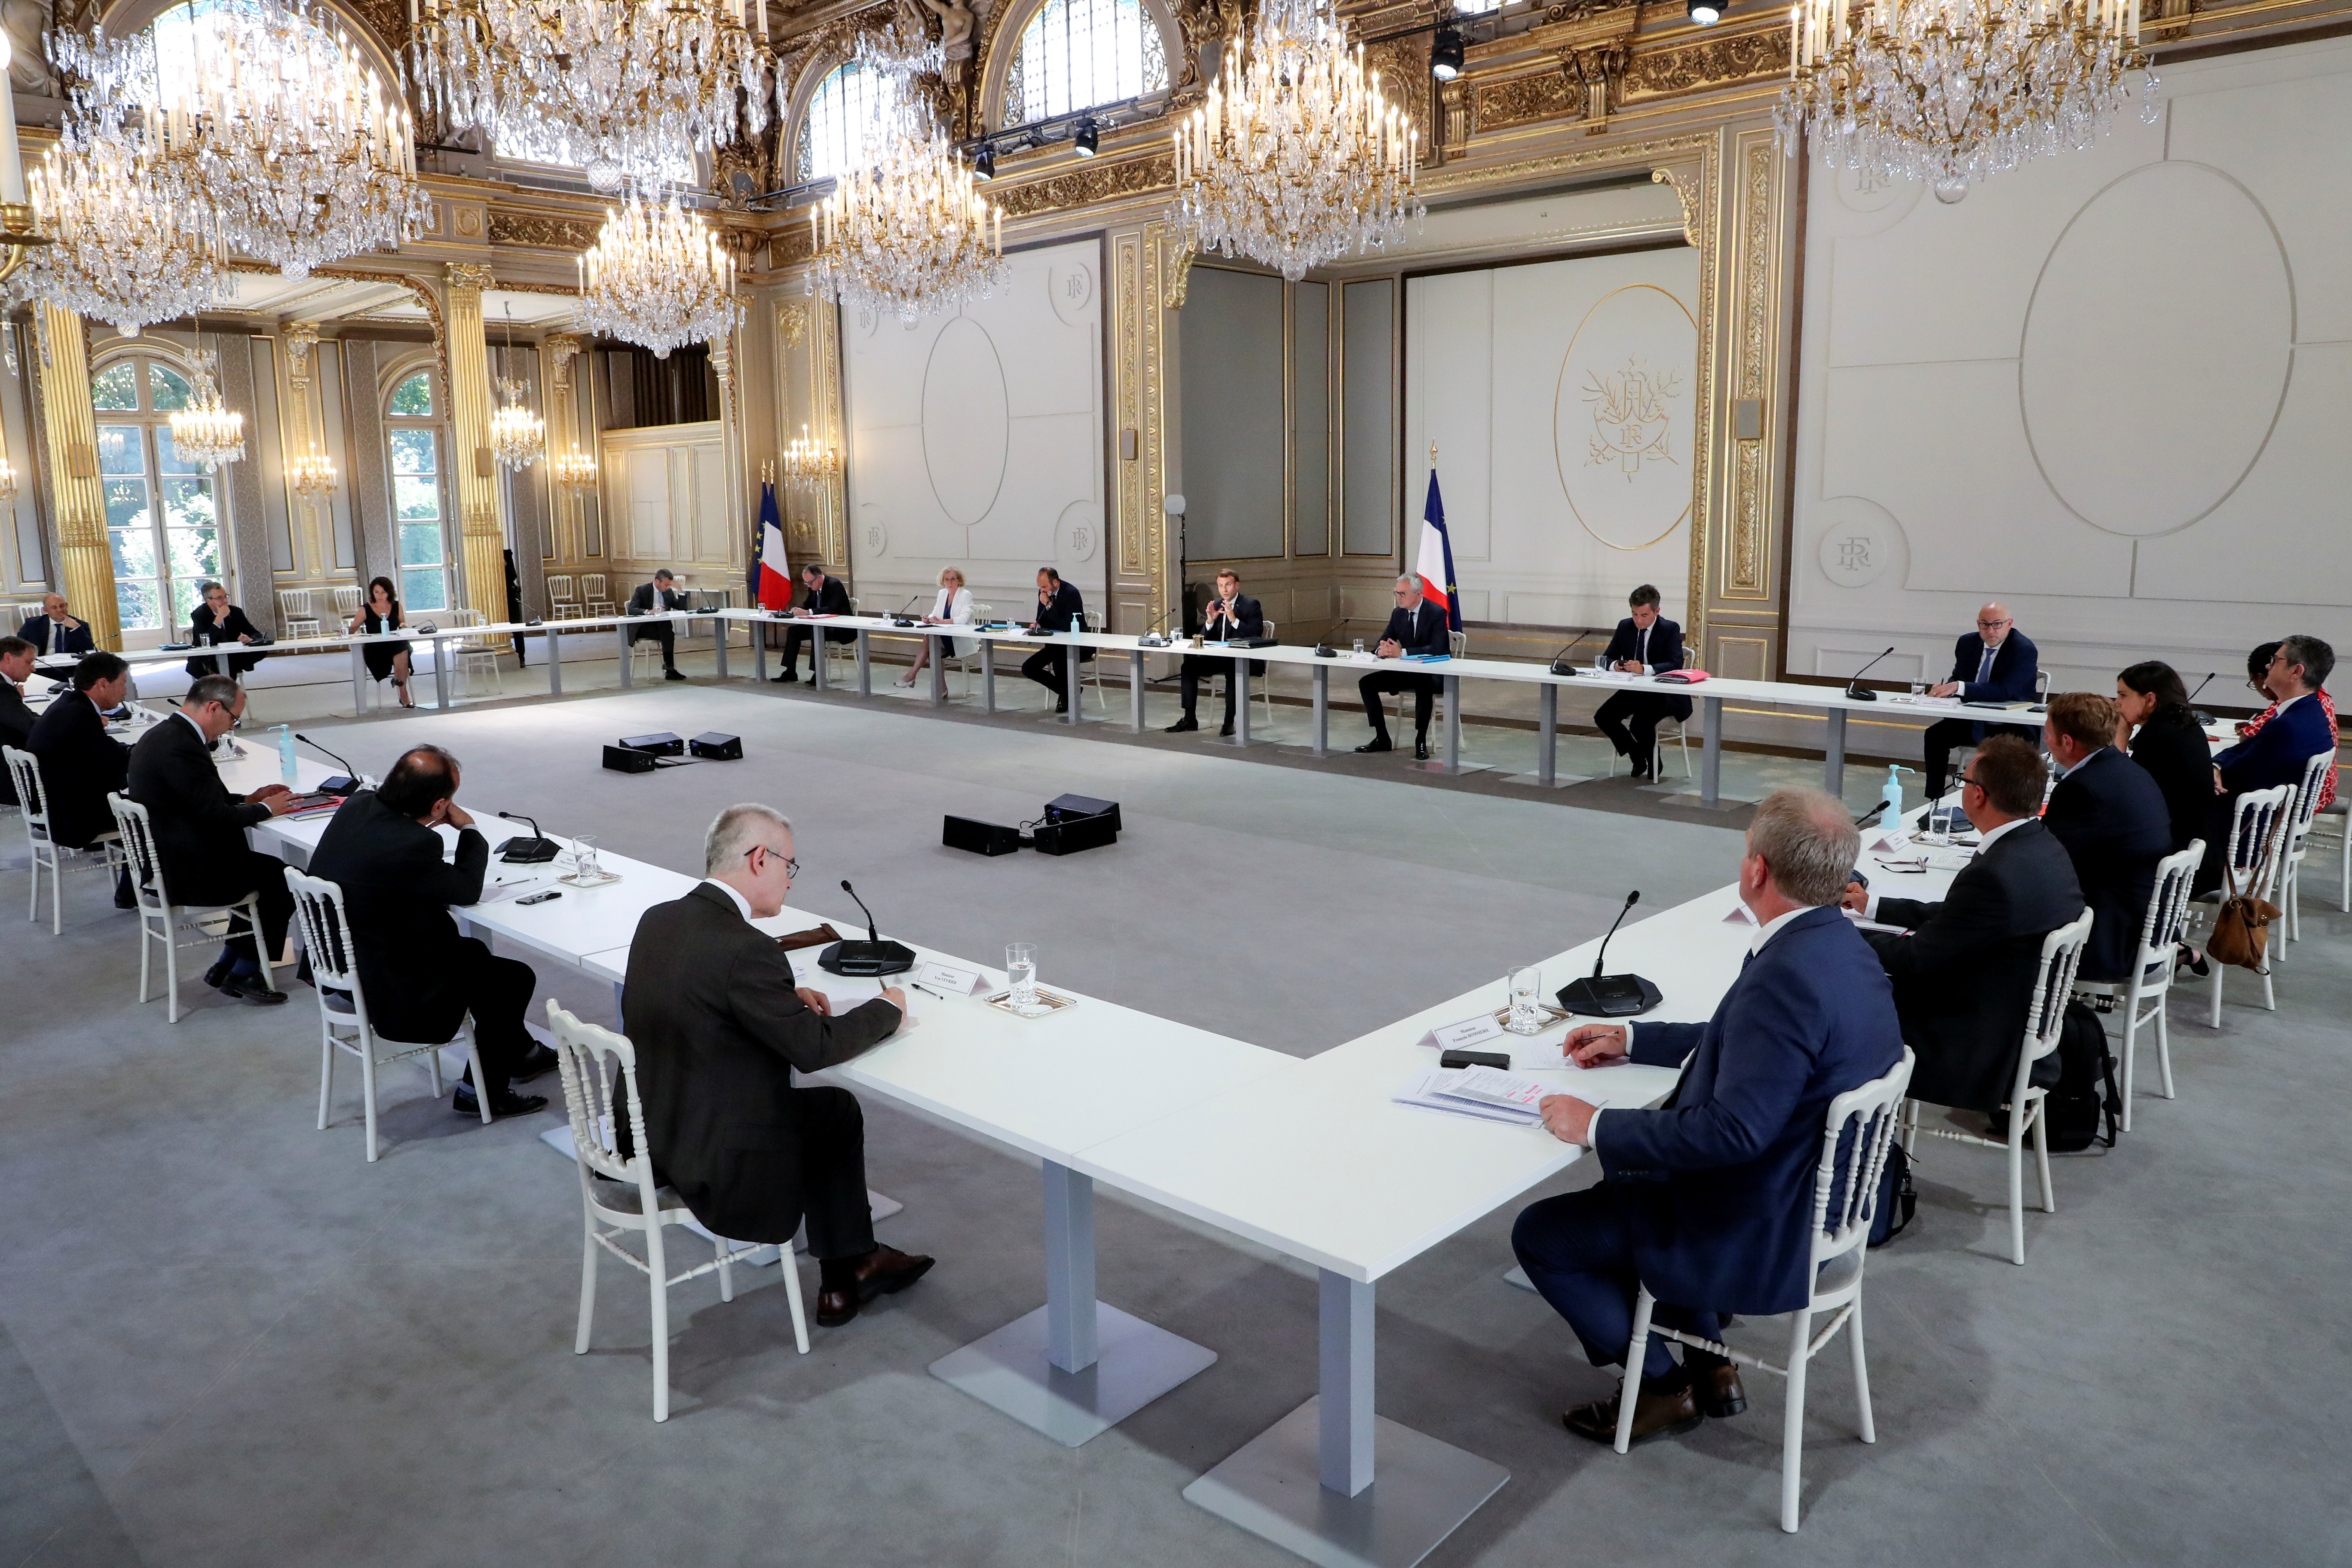 French President Emmanuel Macron attends a meeting with labour union representatives at the Elysee Palace following the coronavirus disease (COVID-19) outbreak, in Paris, France June 24, 2020. Ludovic Marin/Pool via REUTERS - RC2RFH99Y2JK